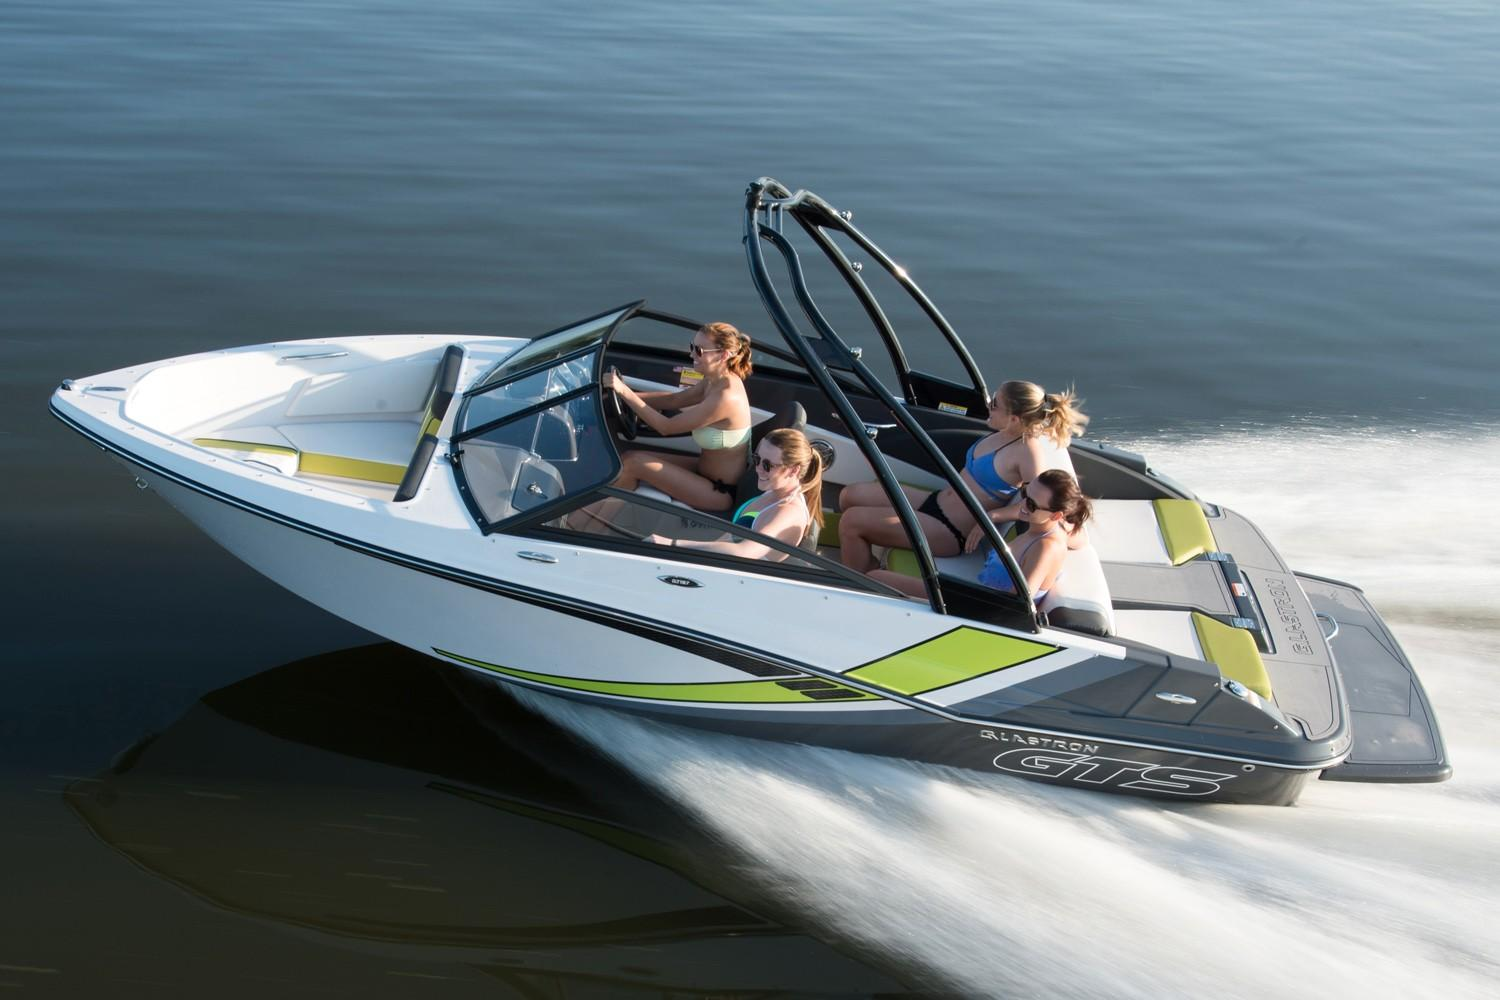 New 2018 Glastron GTS 187 Power Boats Inboard in Speculator, NY